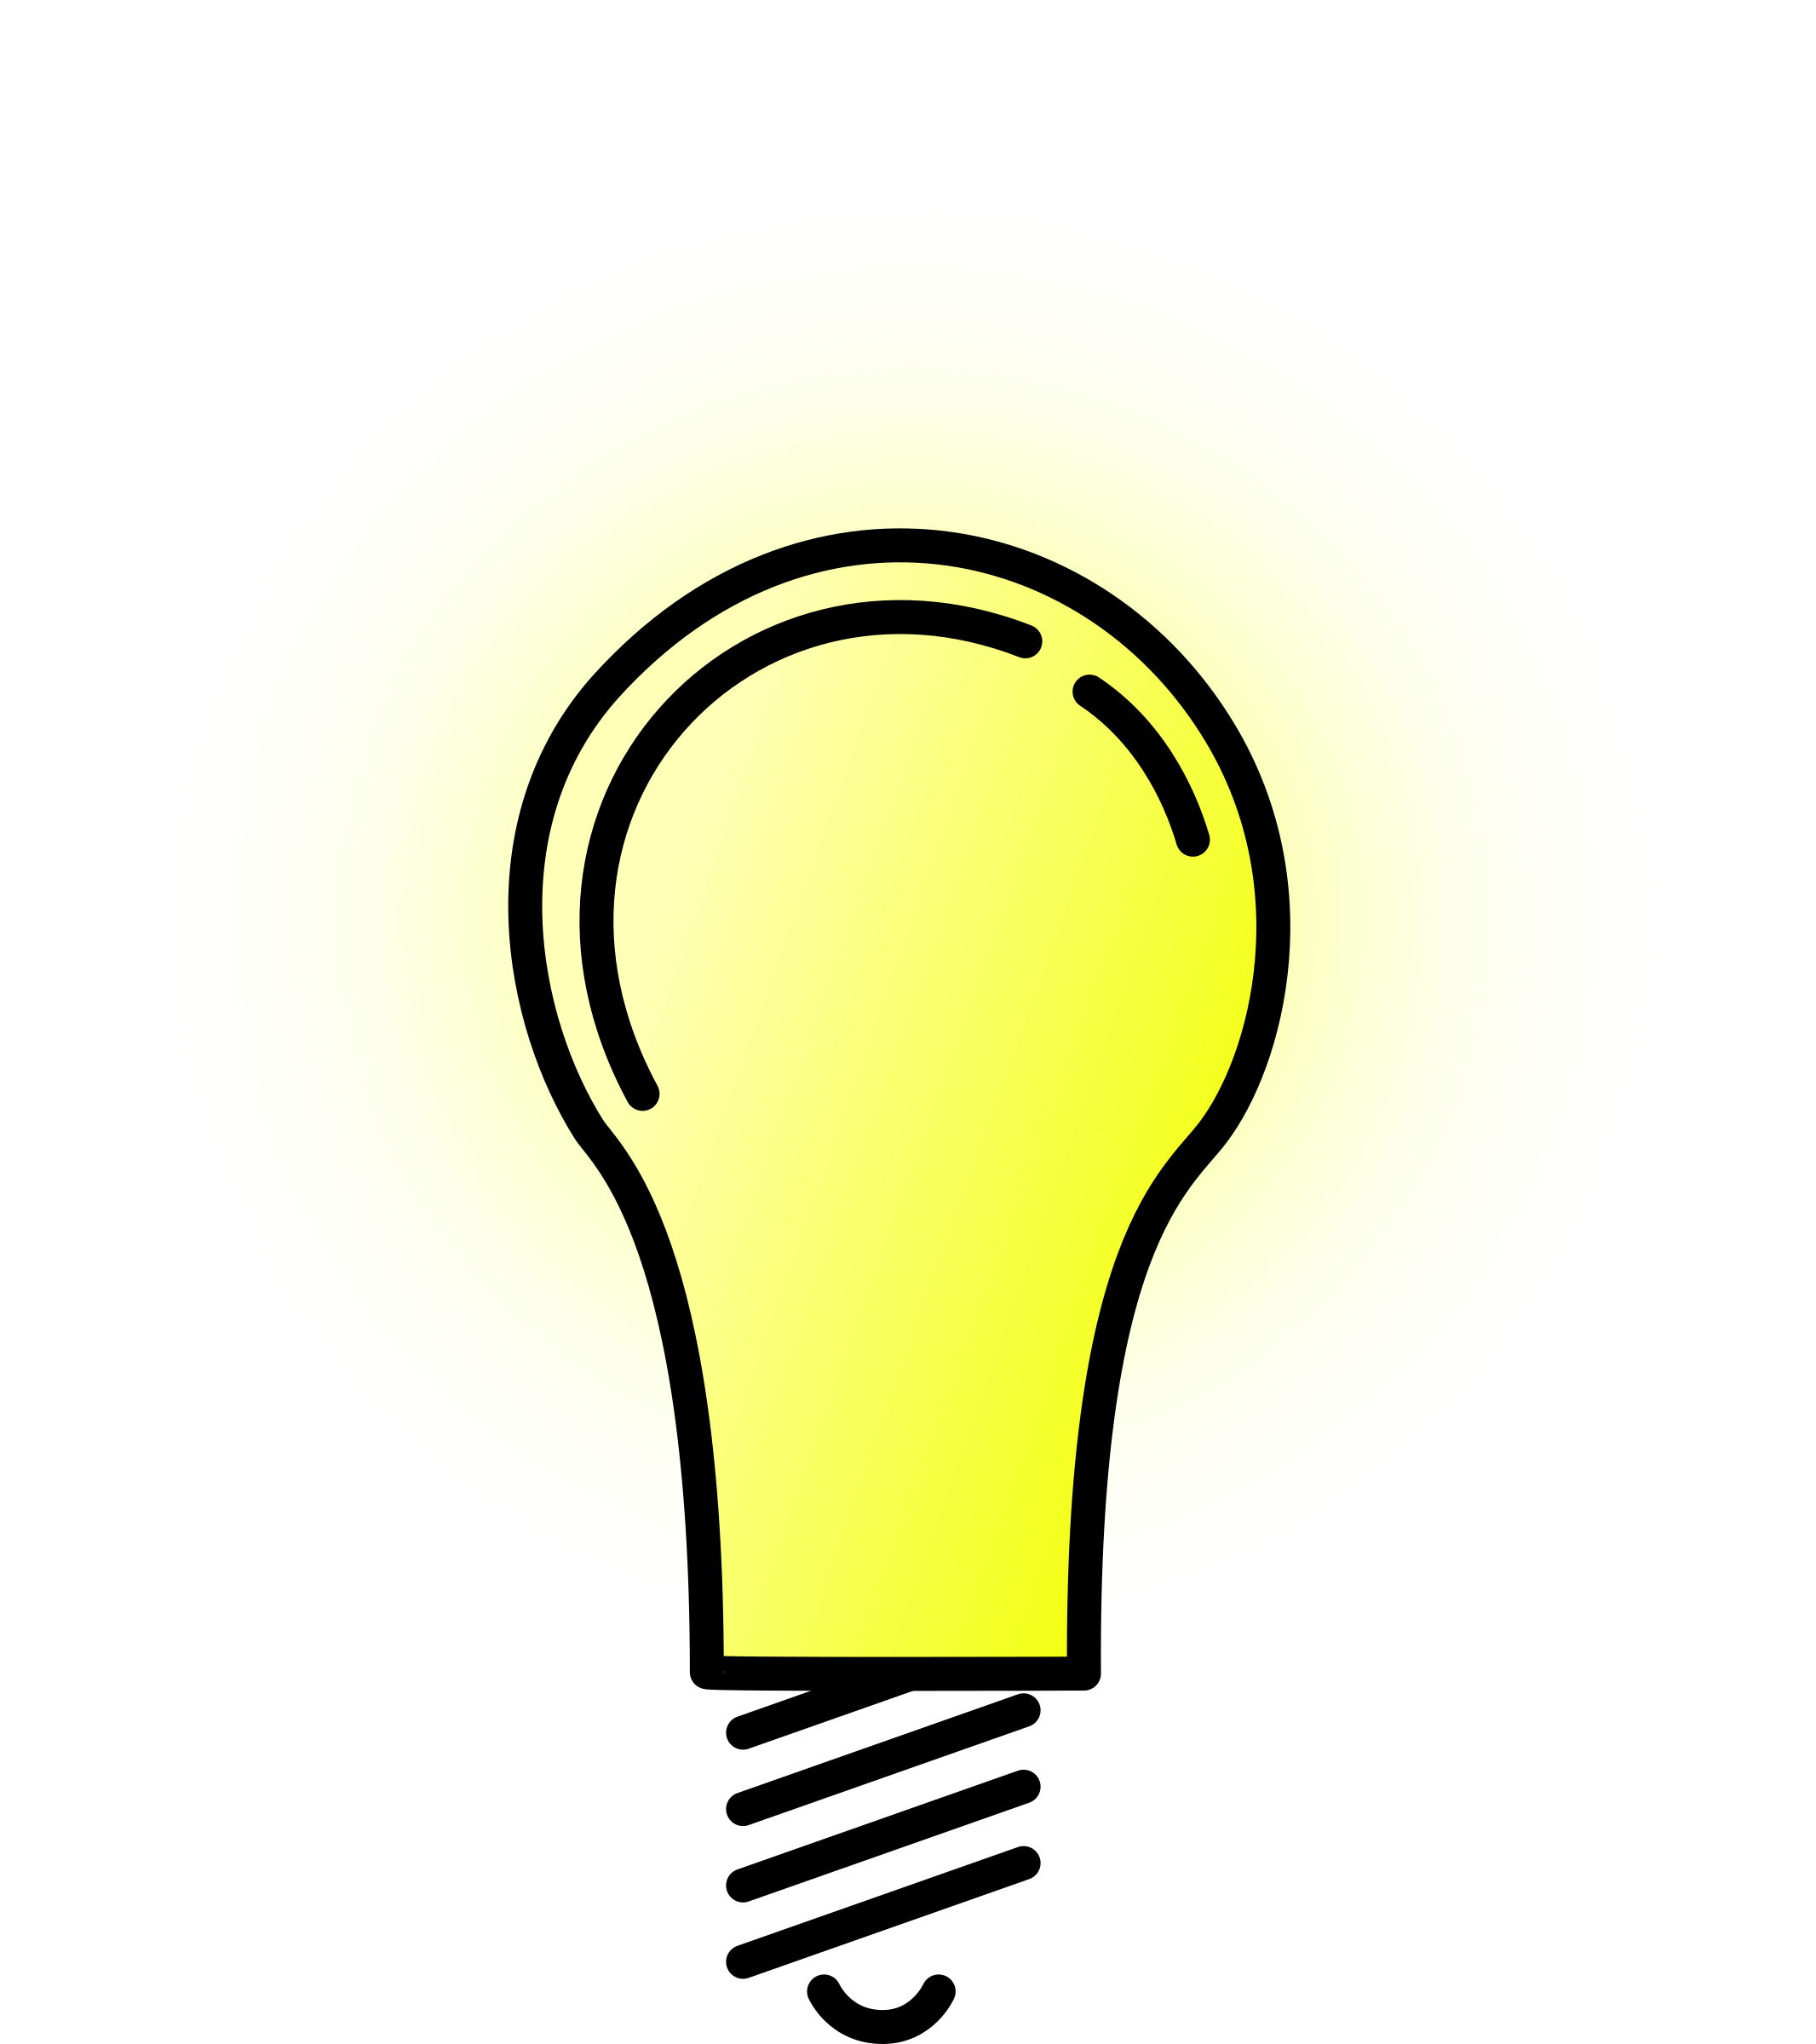 clipart download  best bright light. Lightbulb clipart brilliant idea.